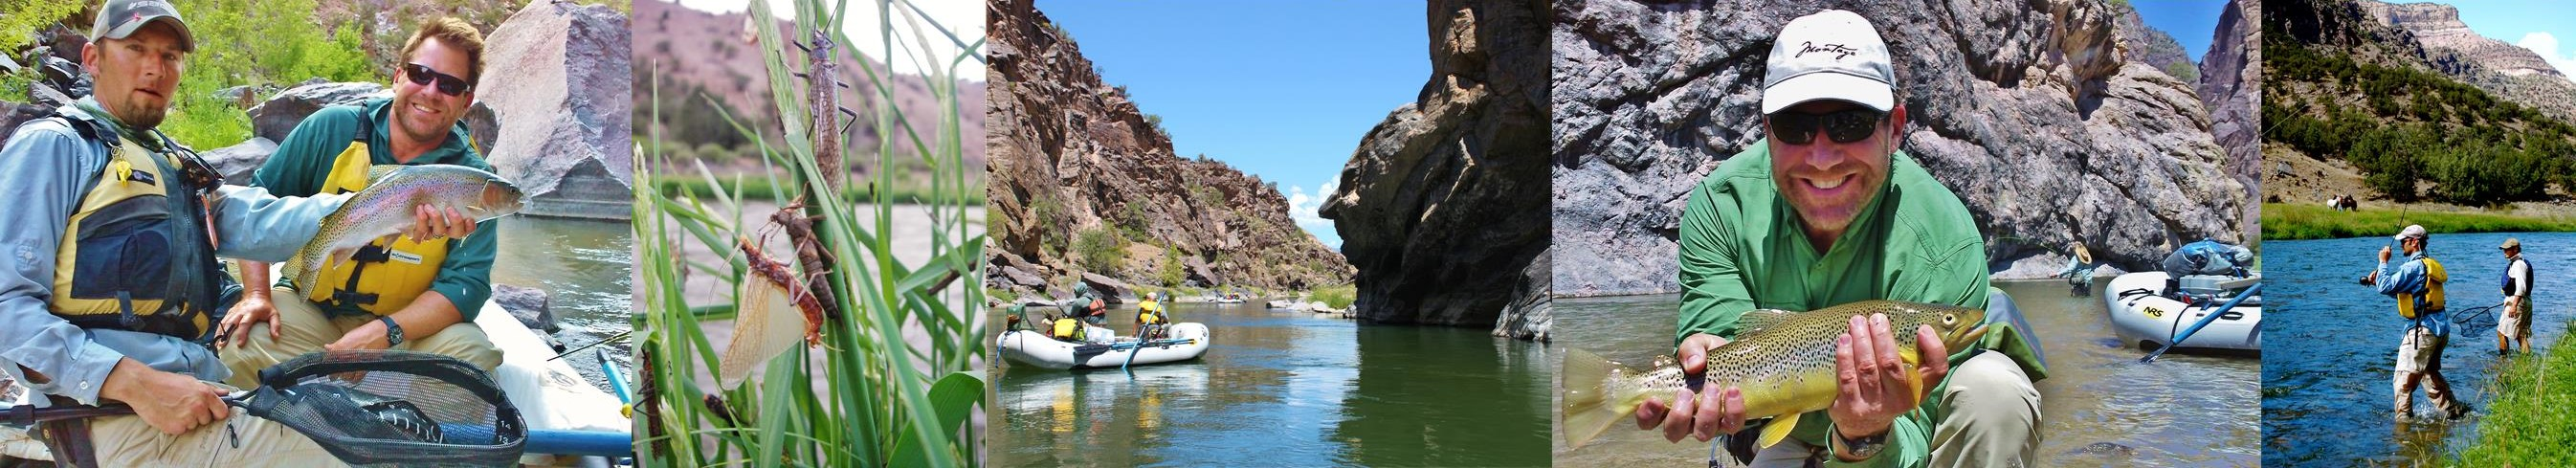 Gunnison Gorge Float Fishing in Colorado